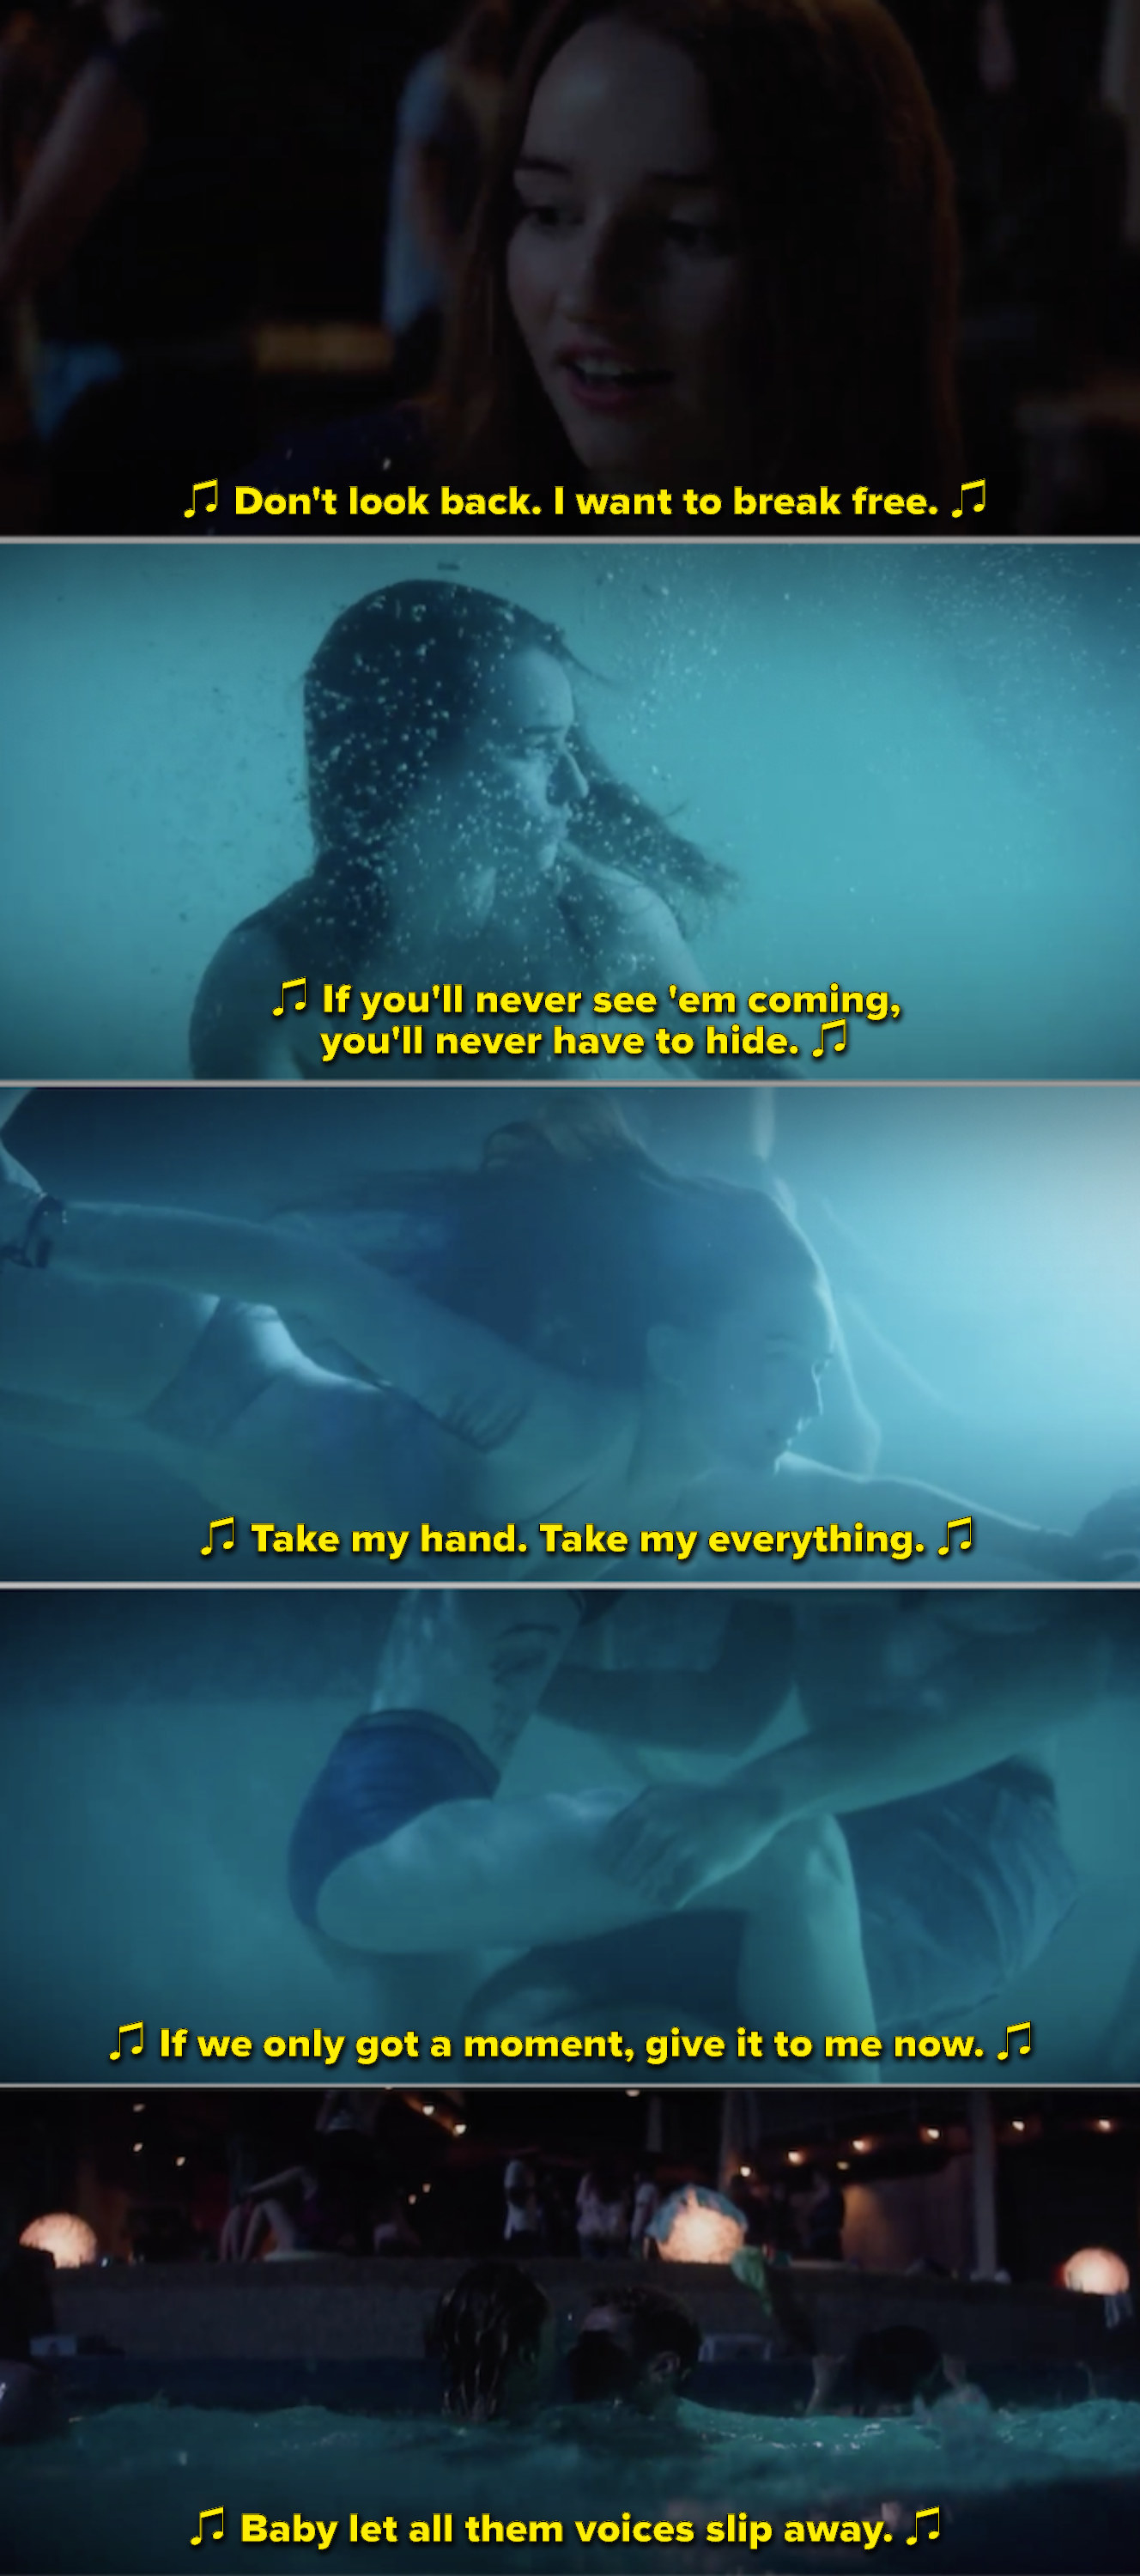 """Amy swimming underwater while this song plays in the background: """"Take my hand, take my everything, if we only got a moment, give it to me now"""""""